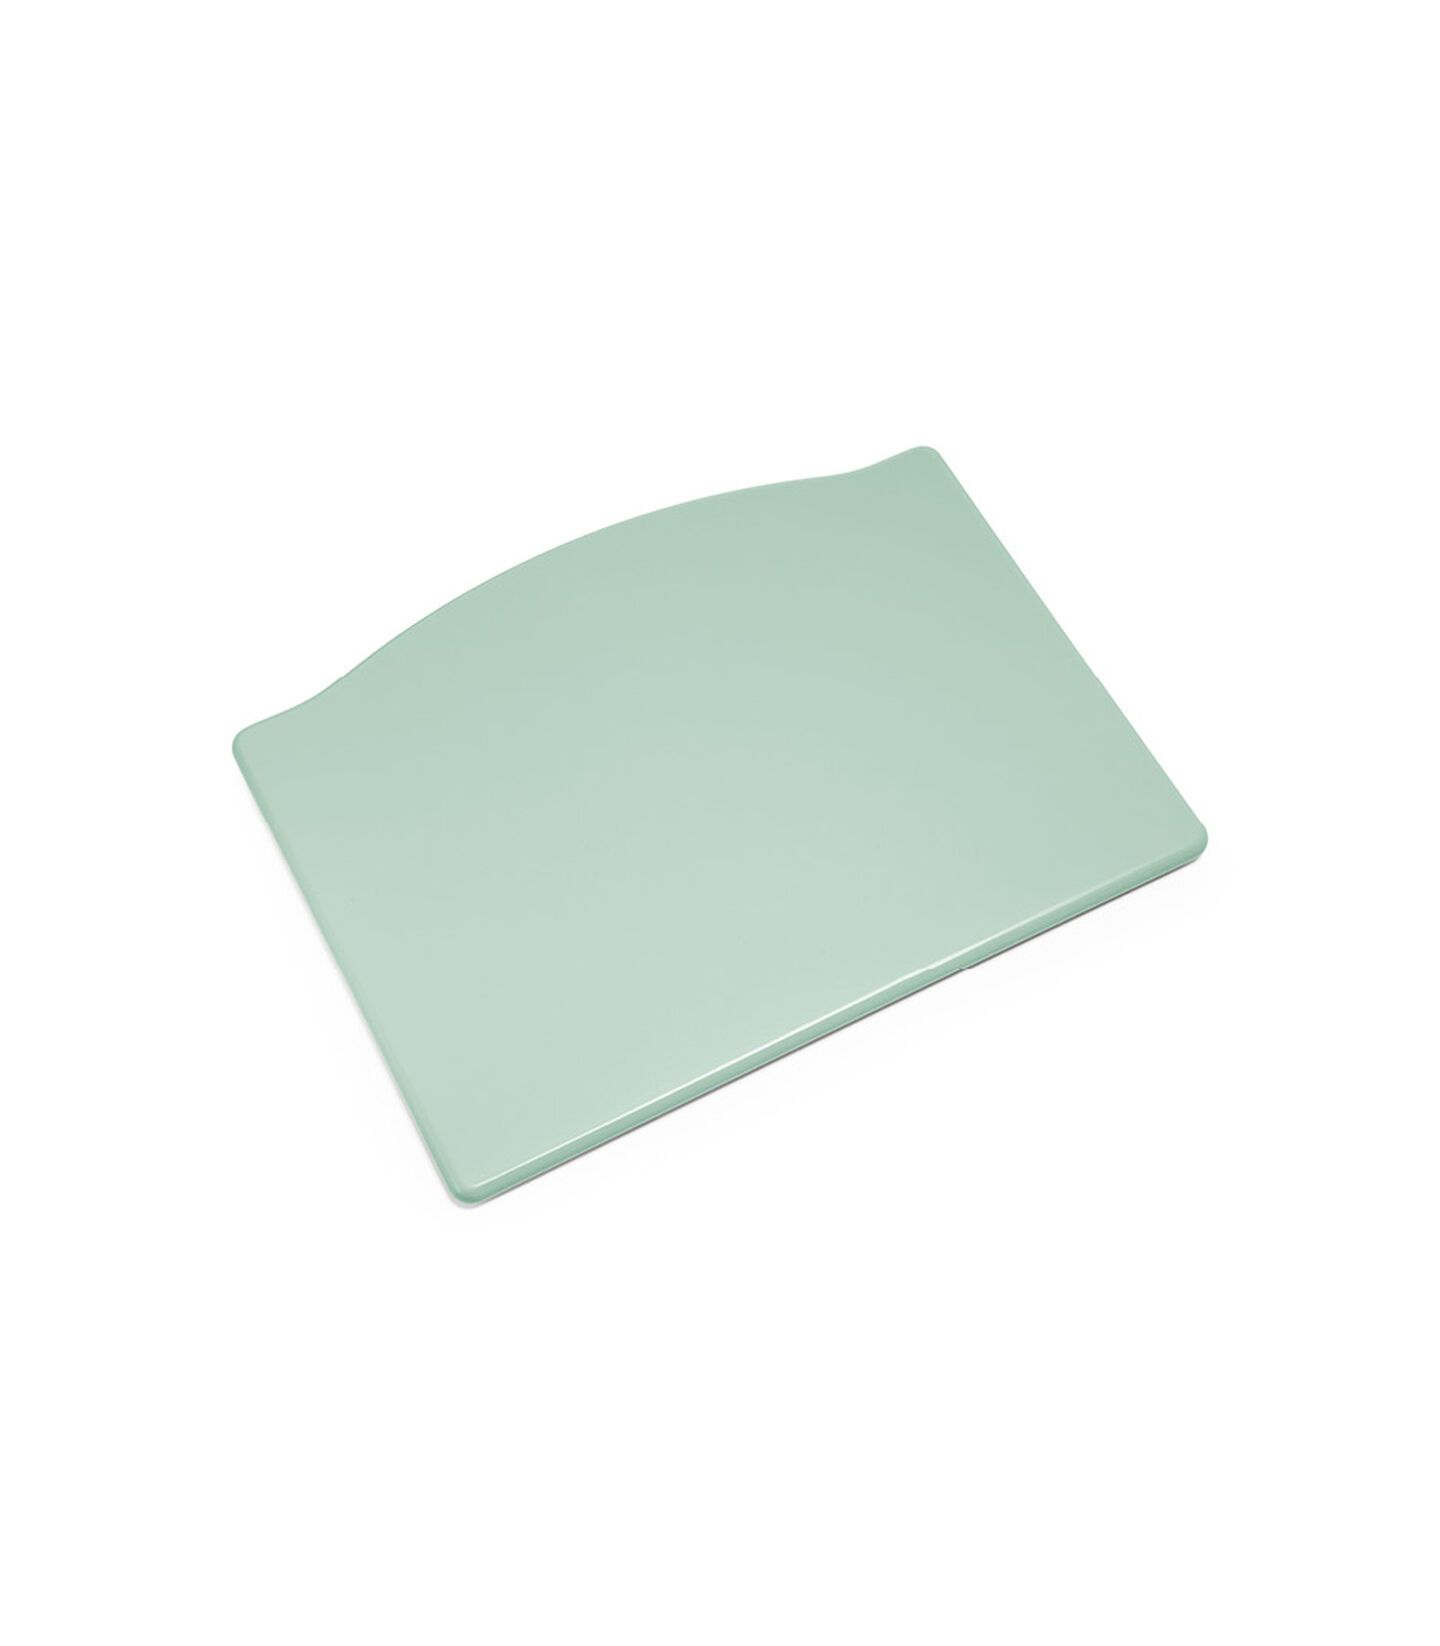 Tripp Trapp Foot plate Soft Mint (Spare part). view 1